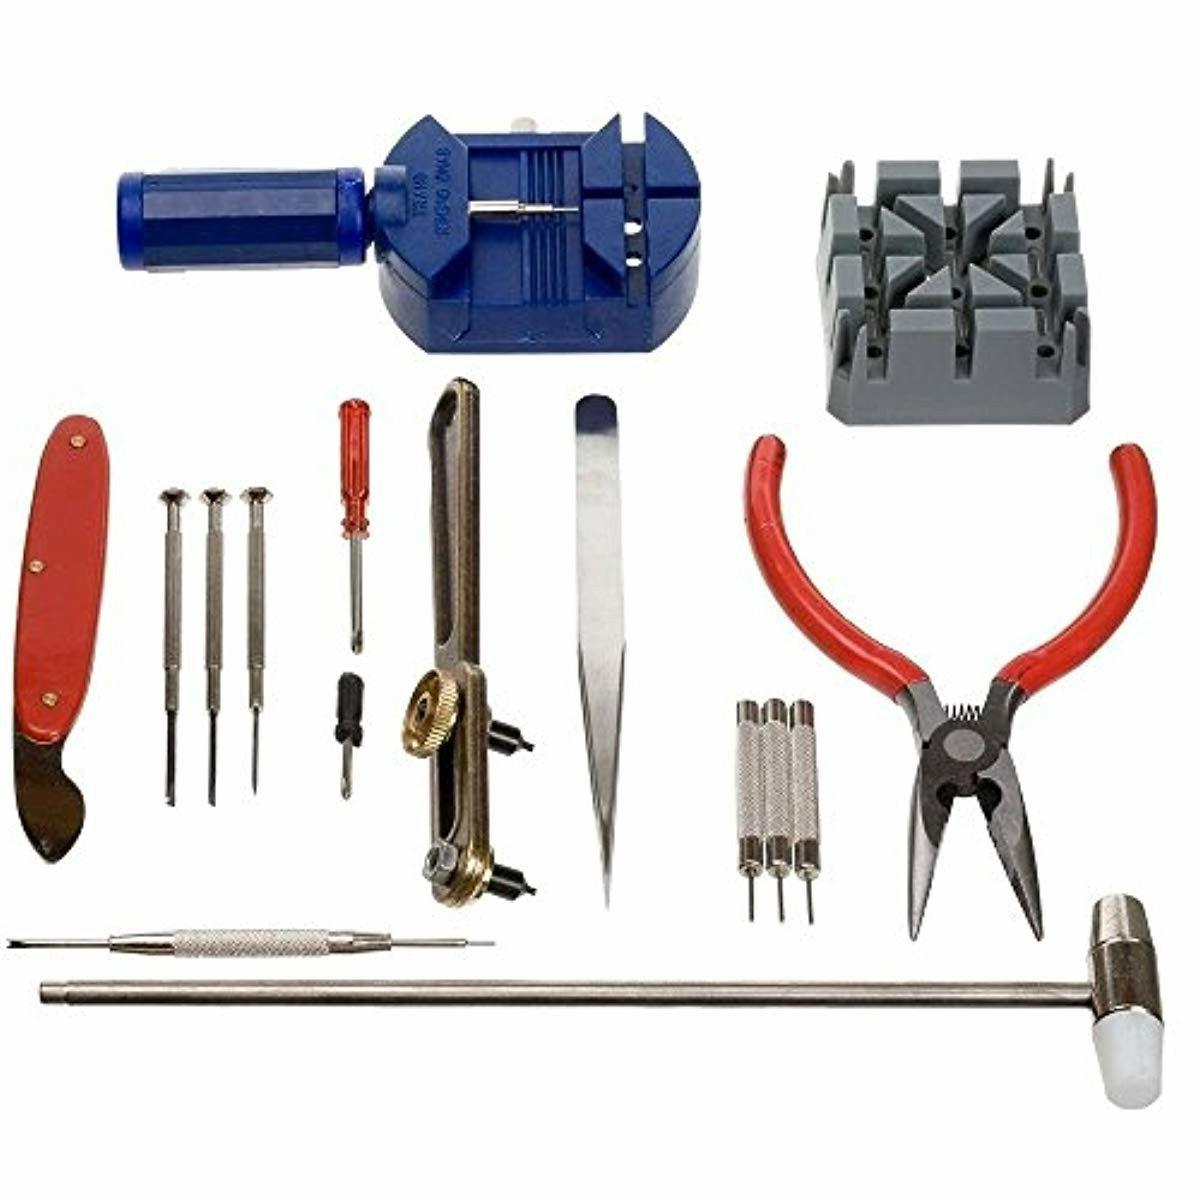 16 pcs watchmaker jewelry repair tool kit